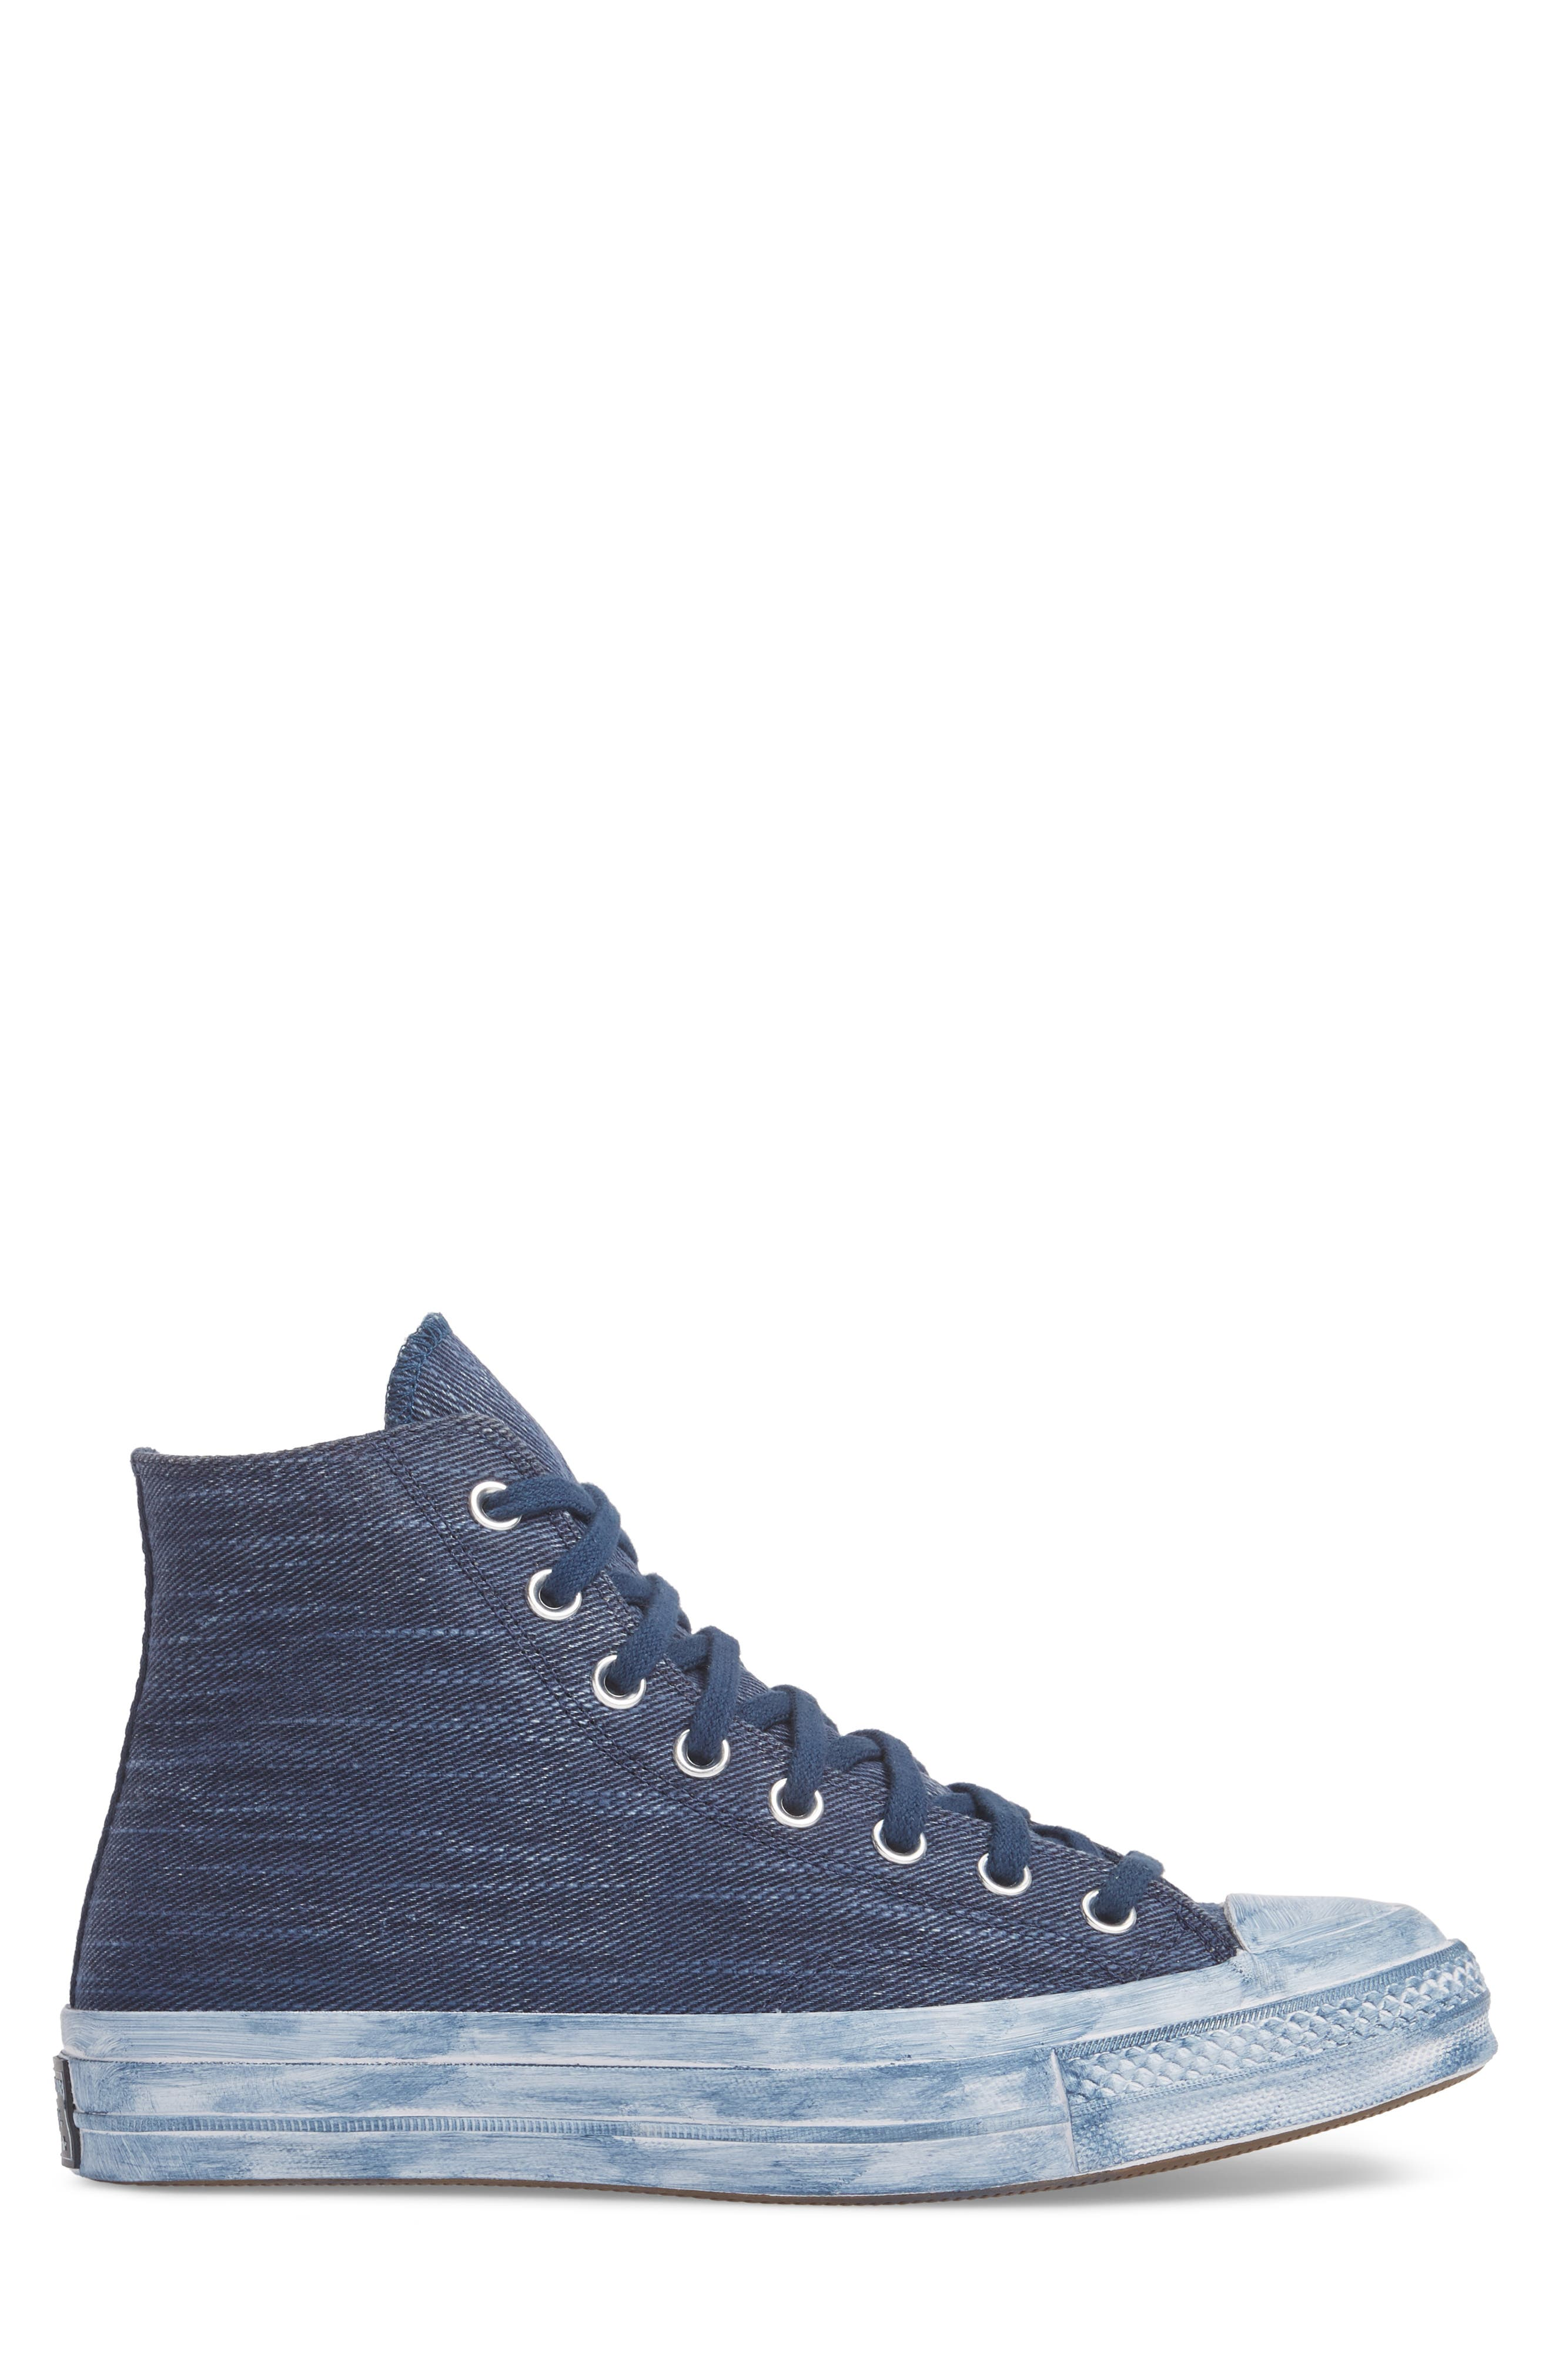 Chuck Taylor<sup>®</sup> All Star<sup>®</sup> Overdyed Linen High Top Sneaker,                             Alternate thumbnail 3, color,                             Navy